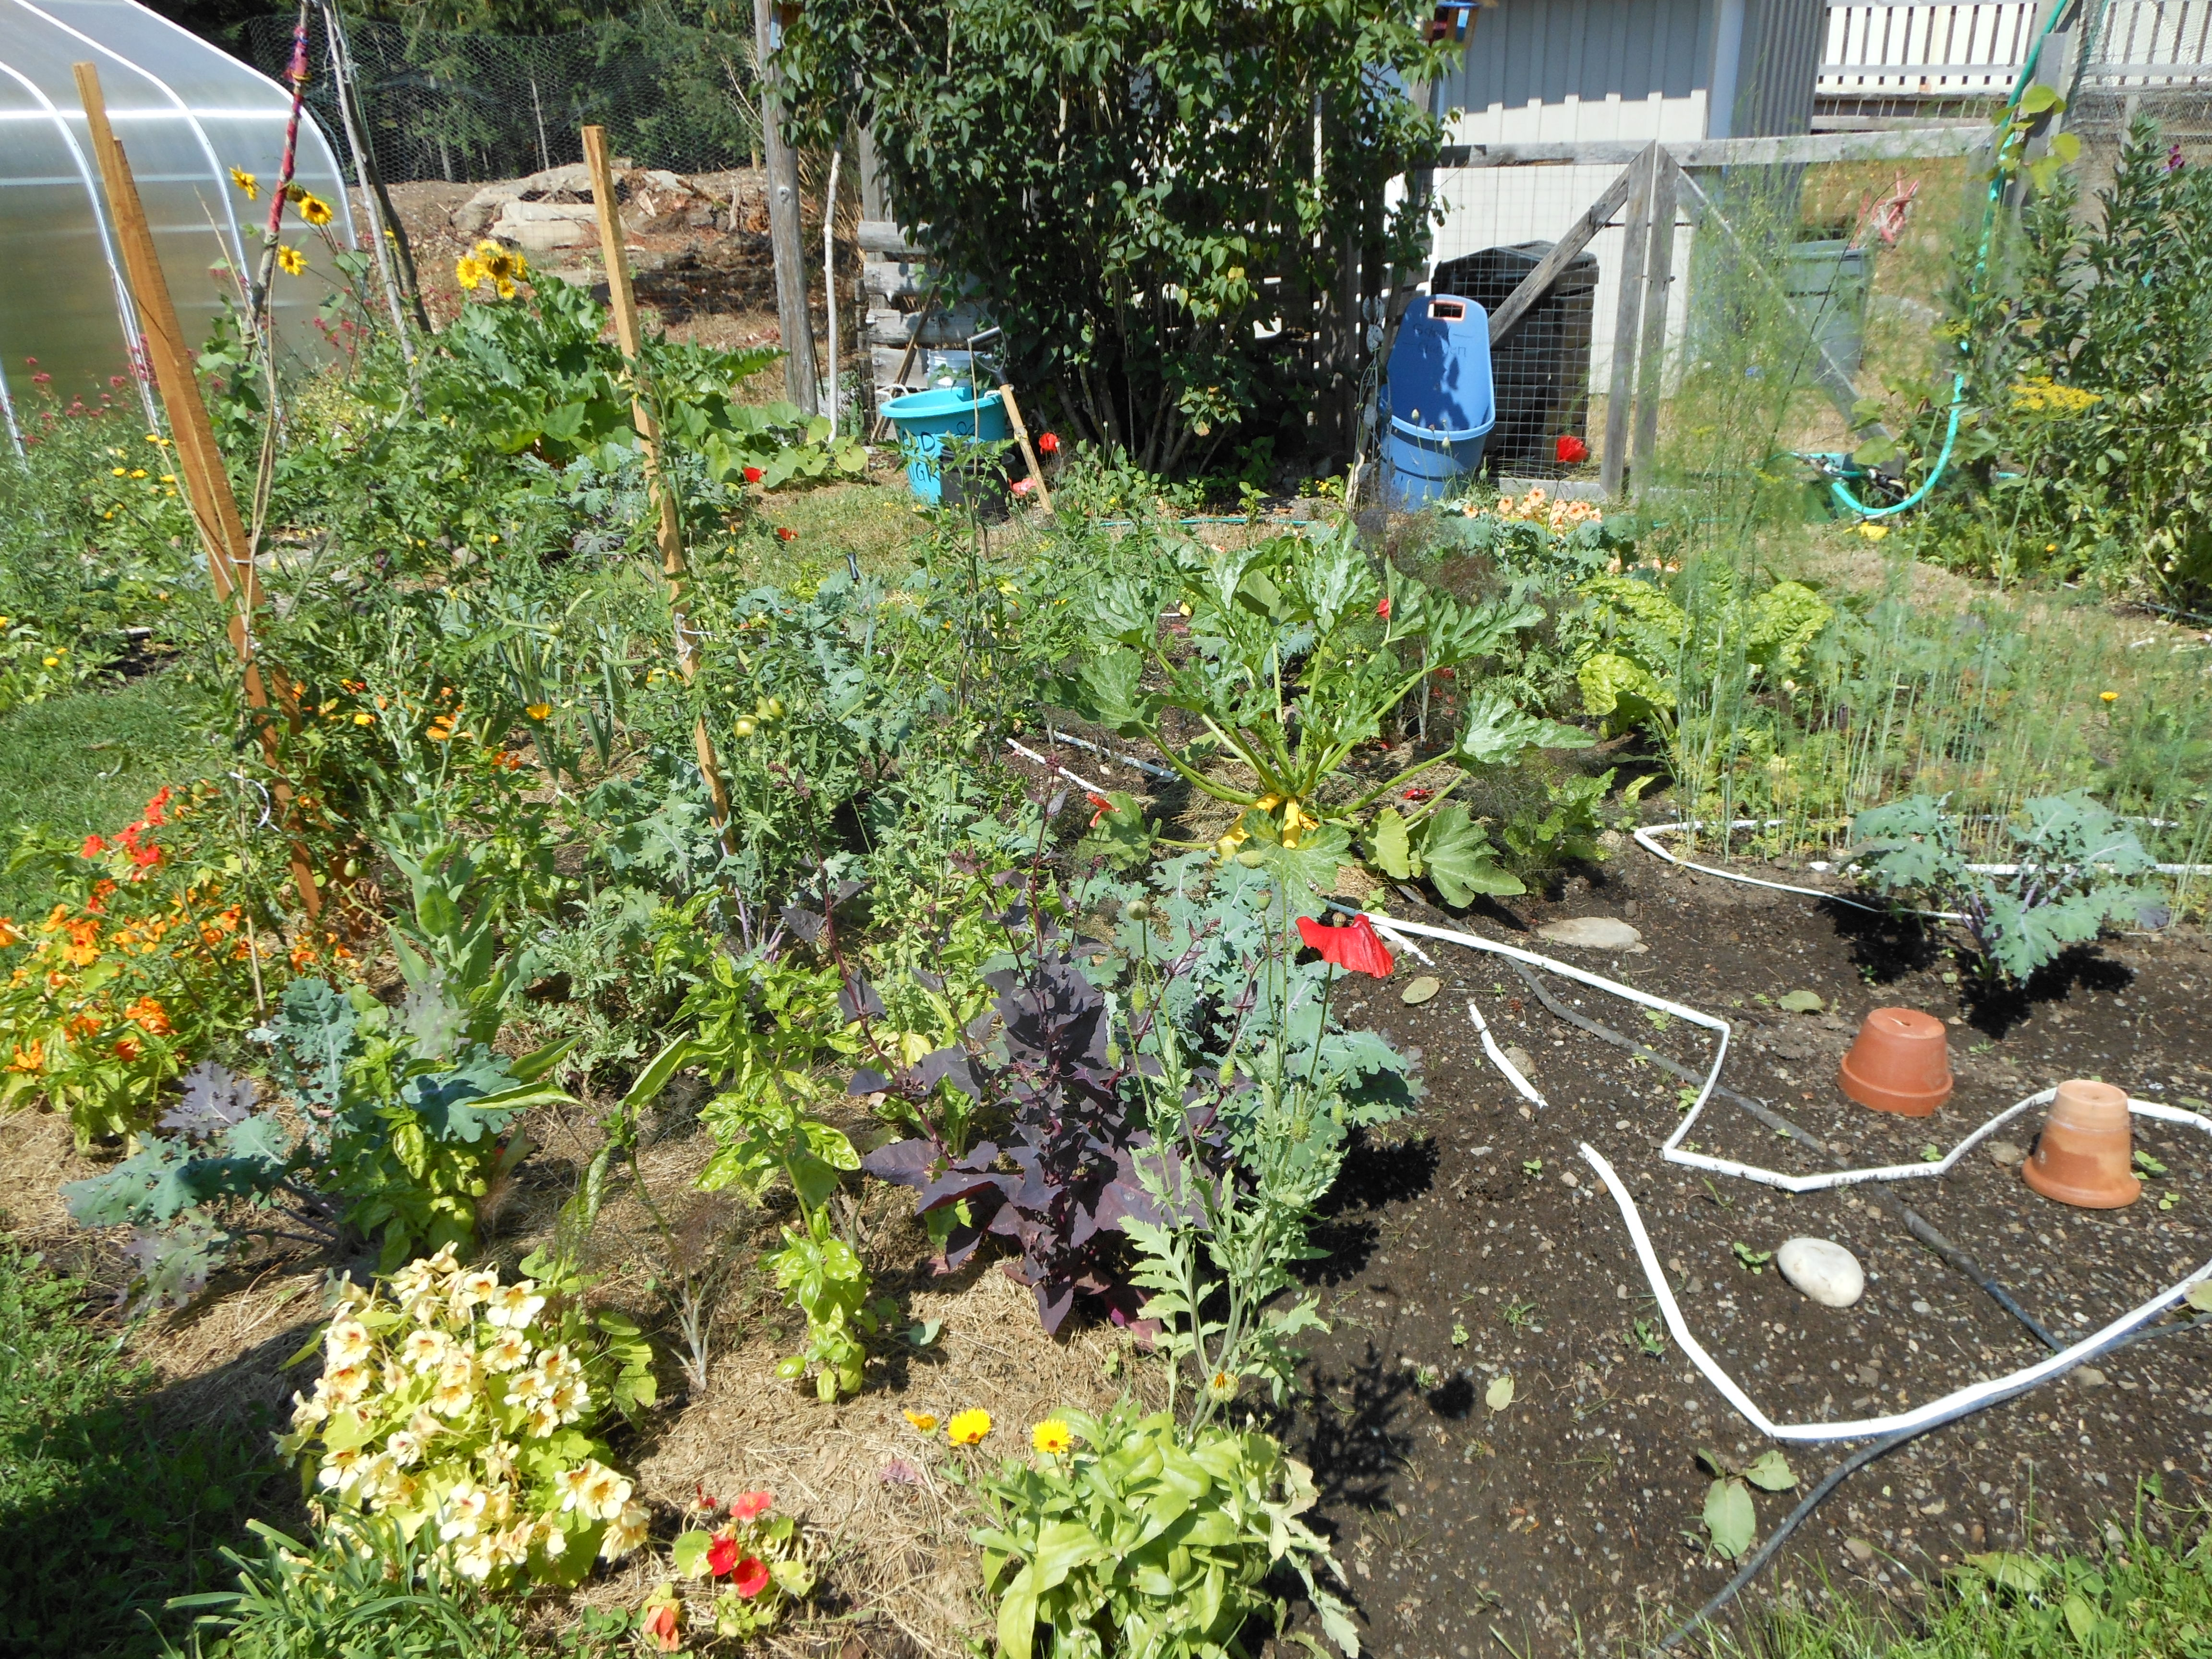 local agriculture - pizza garden